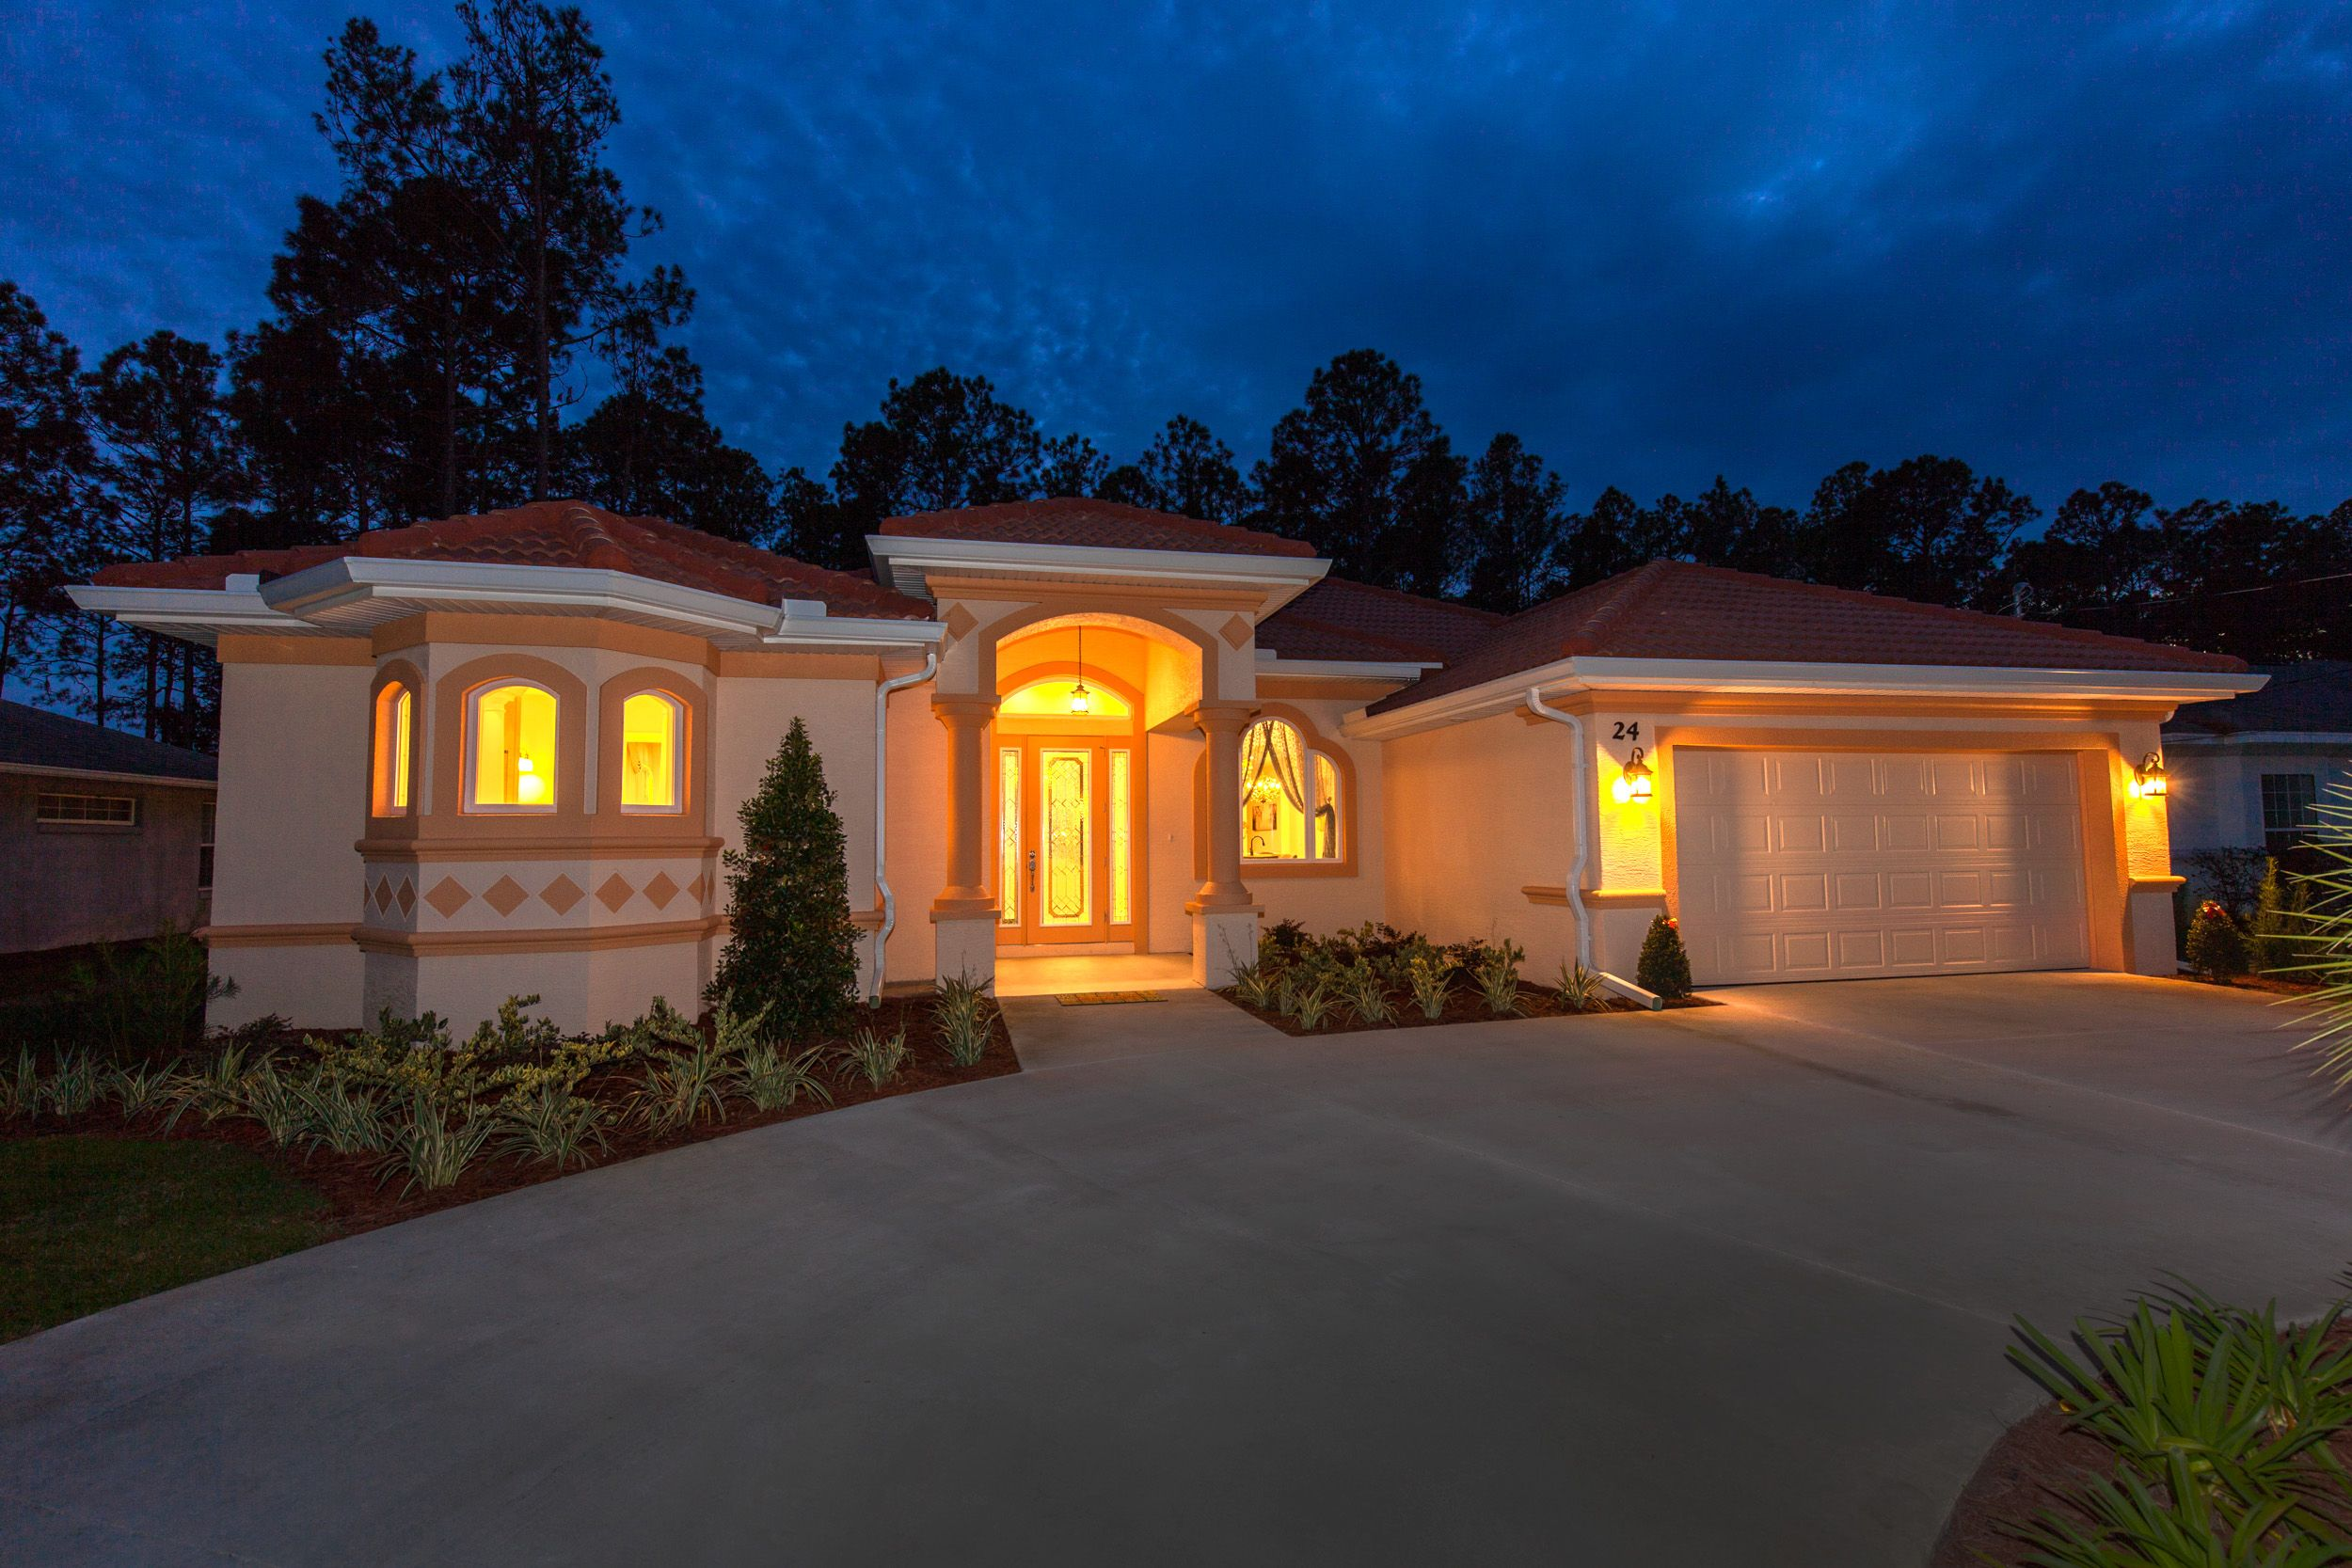 Exterior featured in the ALISA. Certified Green home By Florida Green Construction